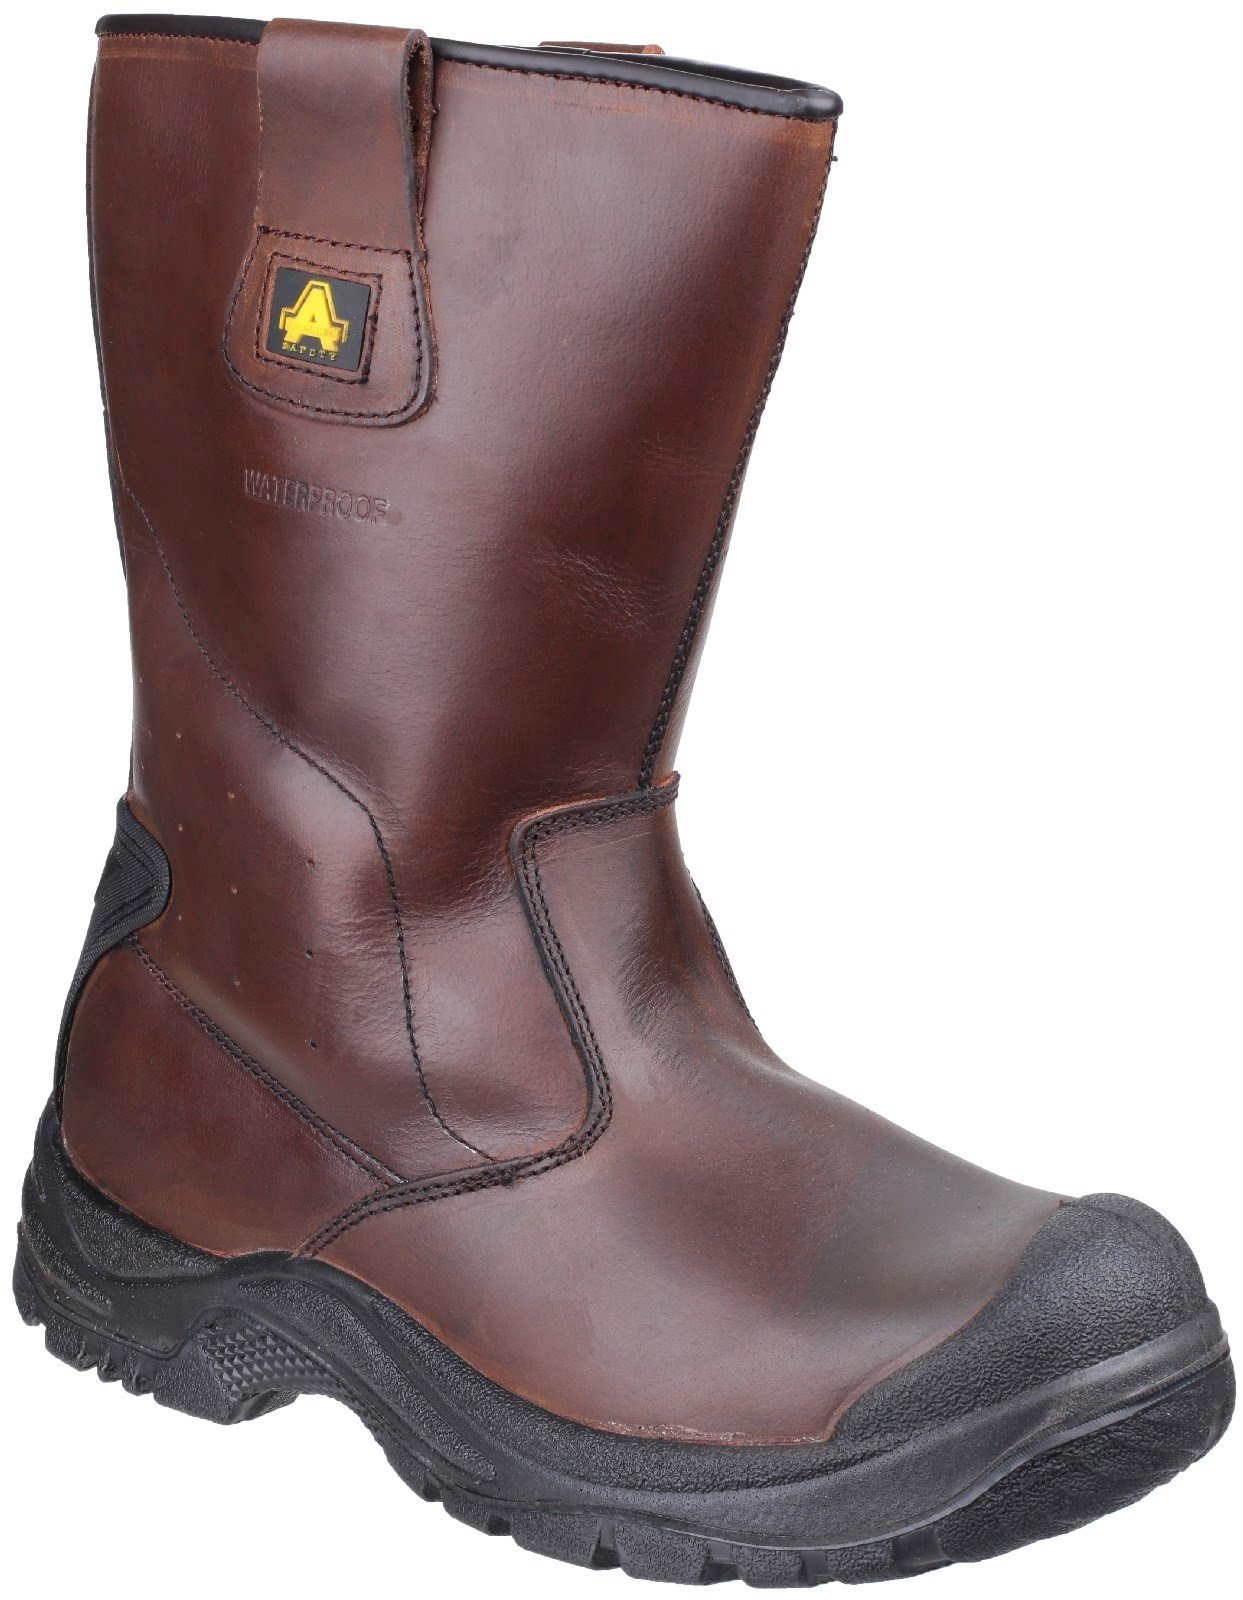 Amblers Unisex Safety Cadair Waterproof Pull on Rigger Boot Brown 24340 - Brown 12